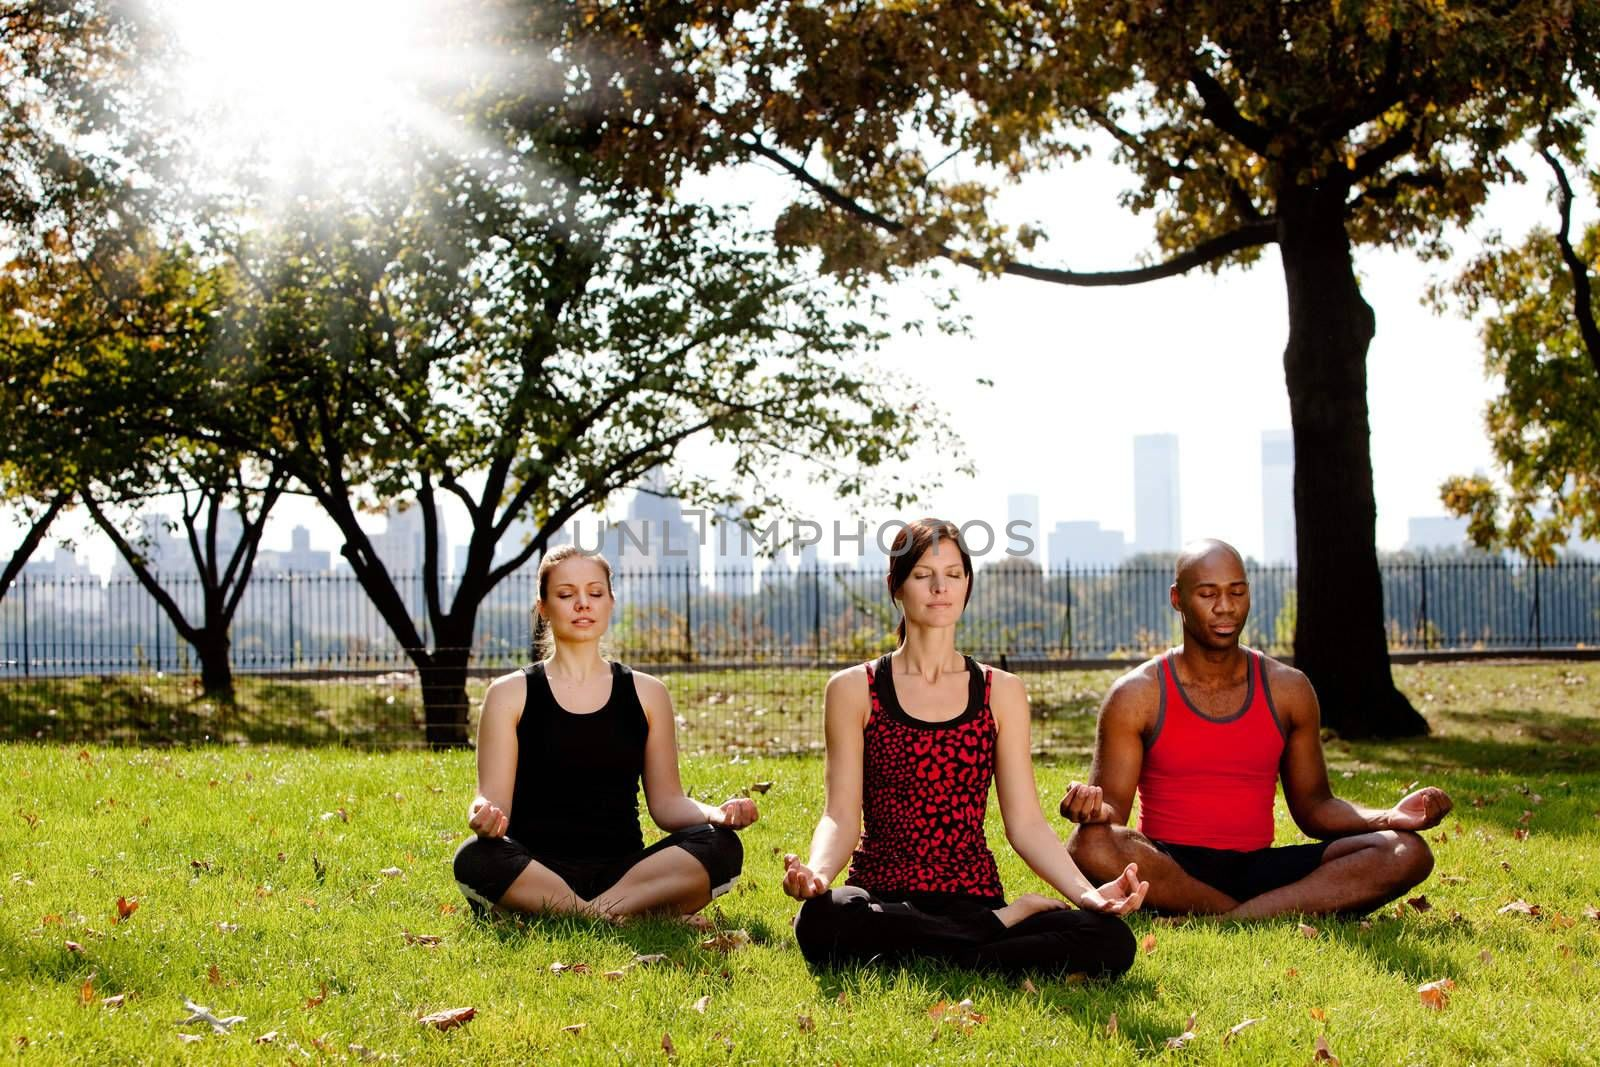 A group of people meditation in a city park